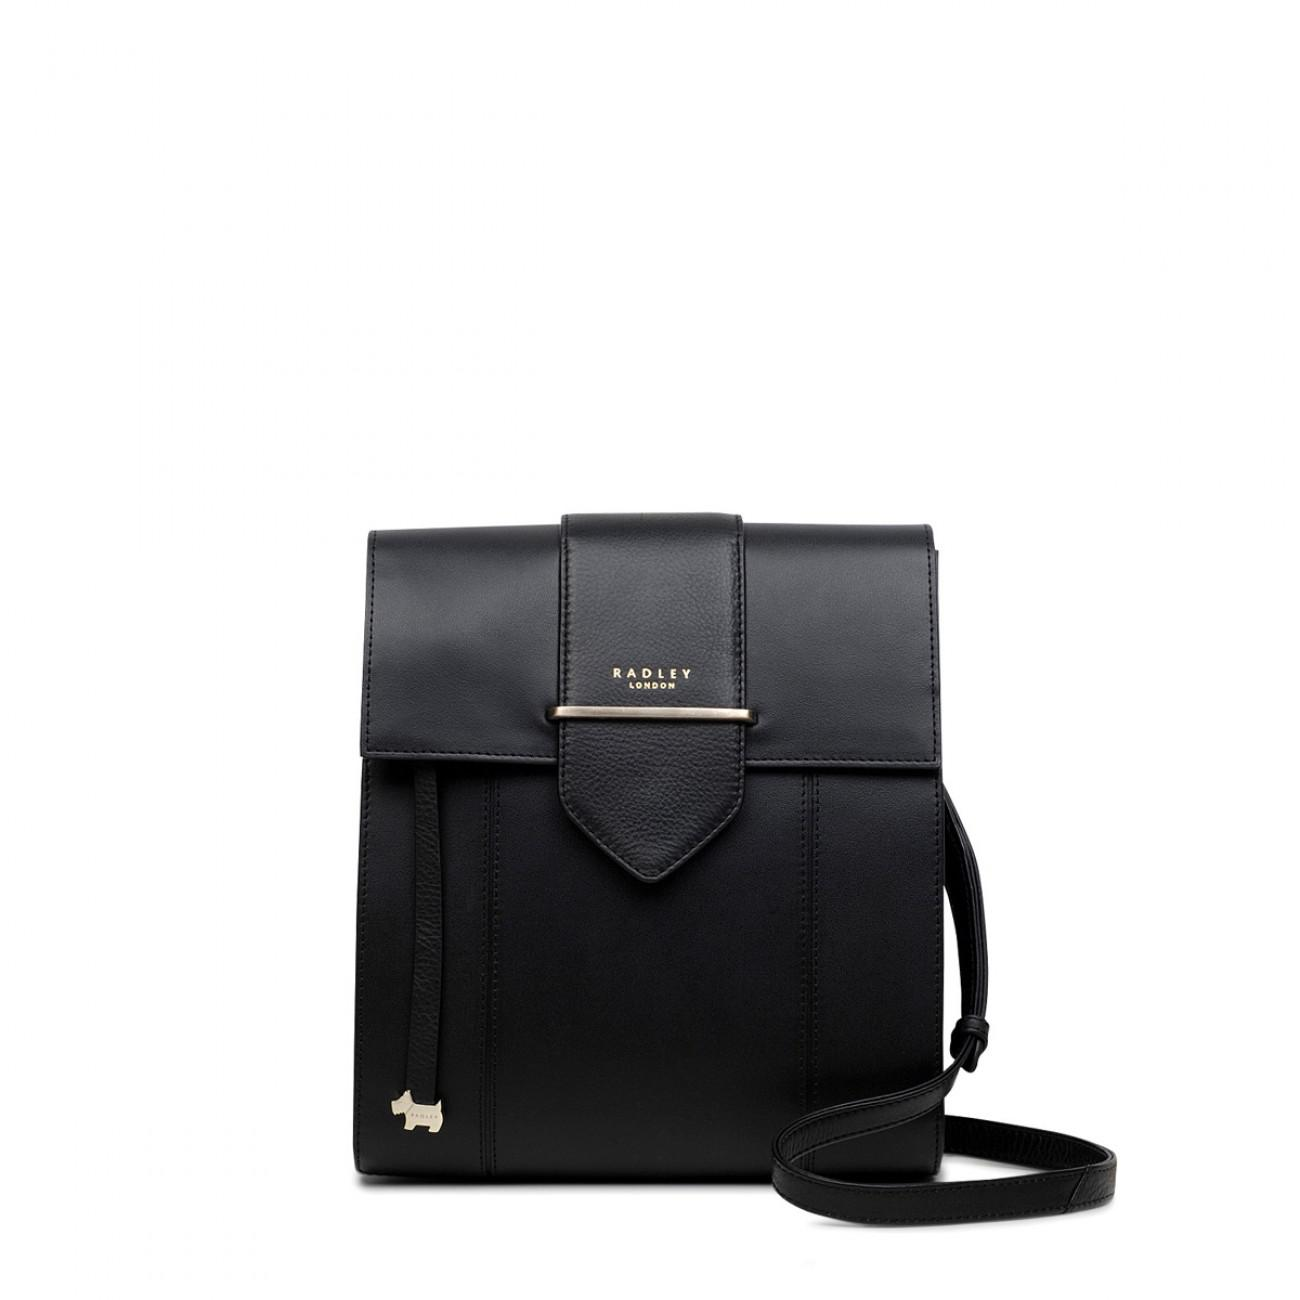 Radley Palace Street Large Flapover Cross Body Bag in Black - Lyst 920a80108a